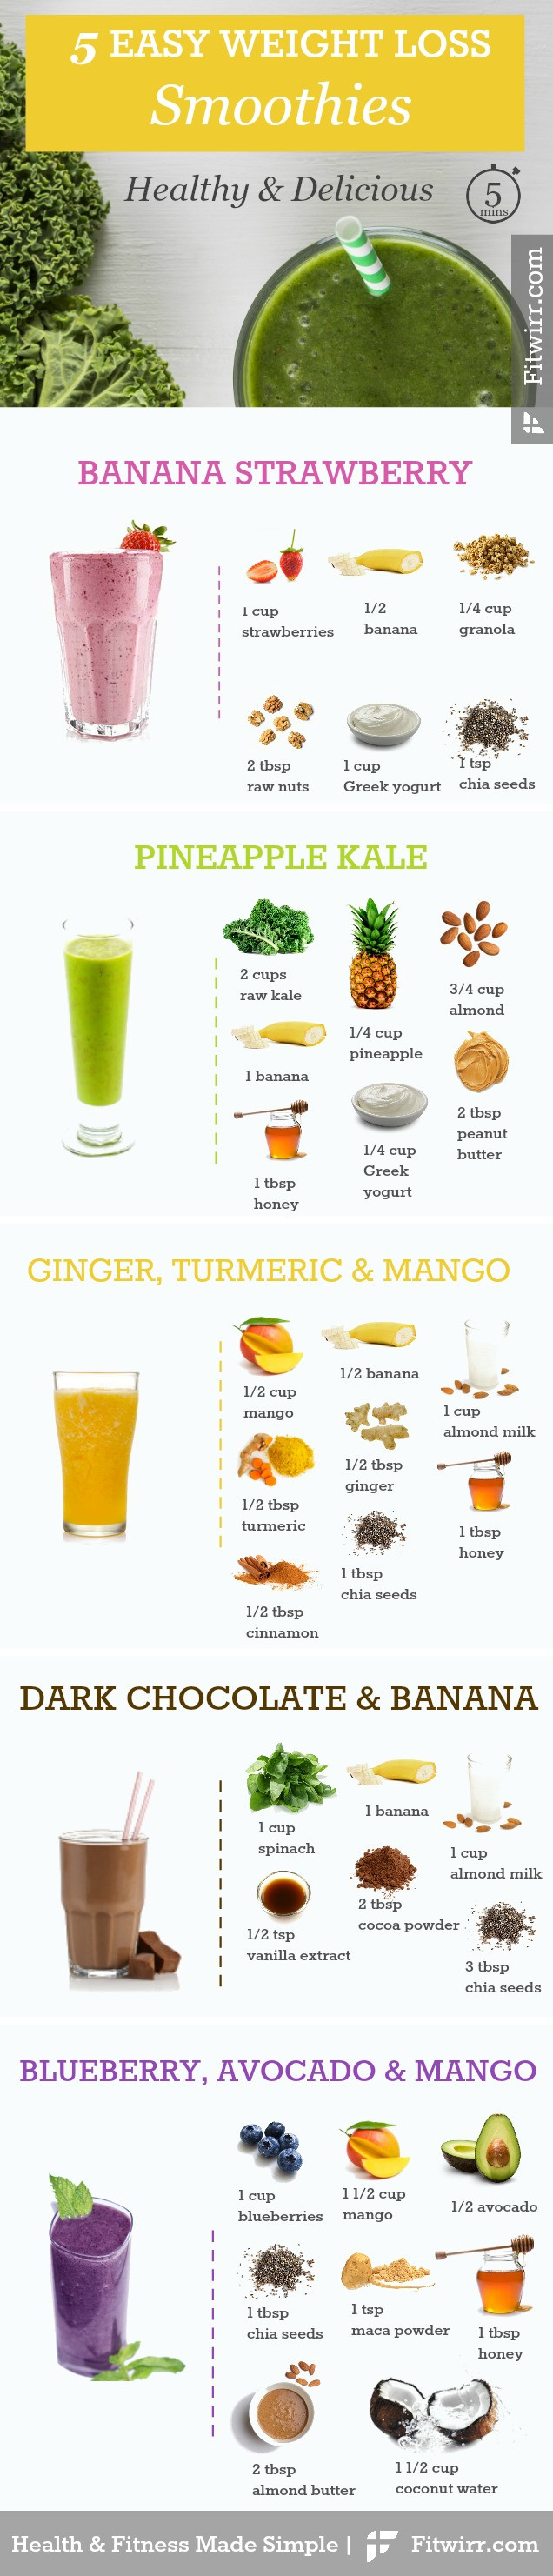 Healthy Fruit Smoothie Recipes For Weight Loss  5 Best Smoothie Recipes for Weight Loss